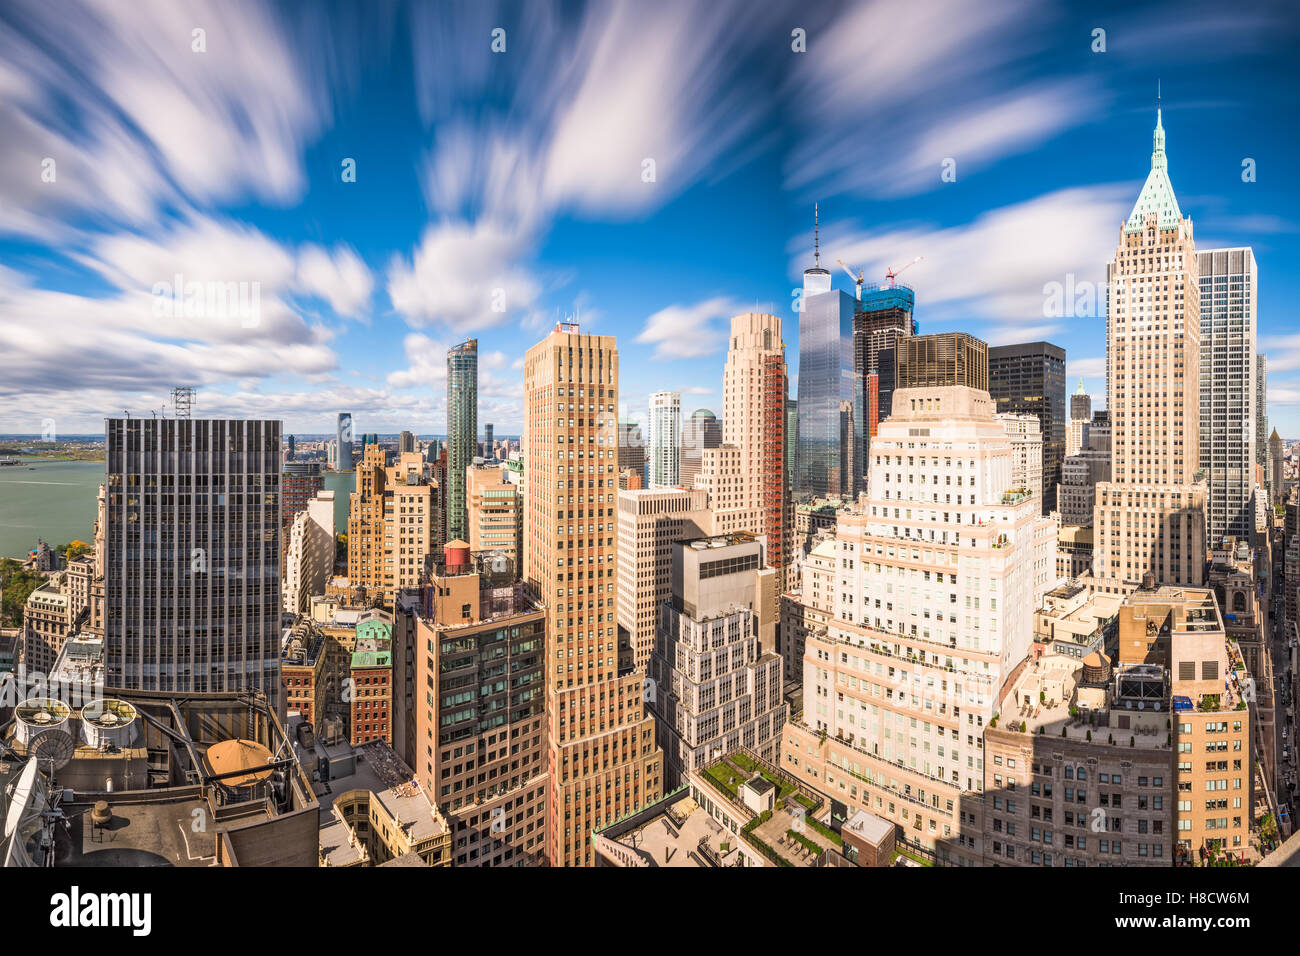 New York City Financial District cityscape at dusk. - Stock Image